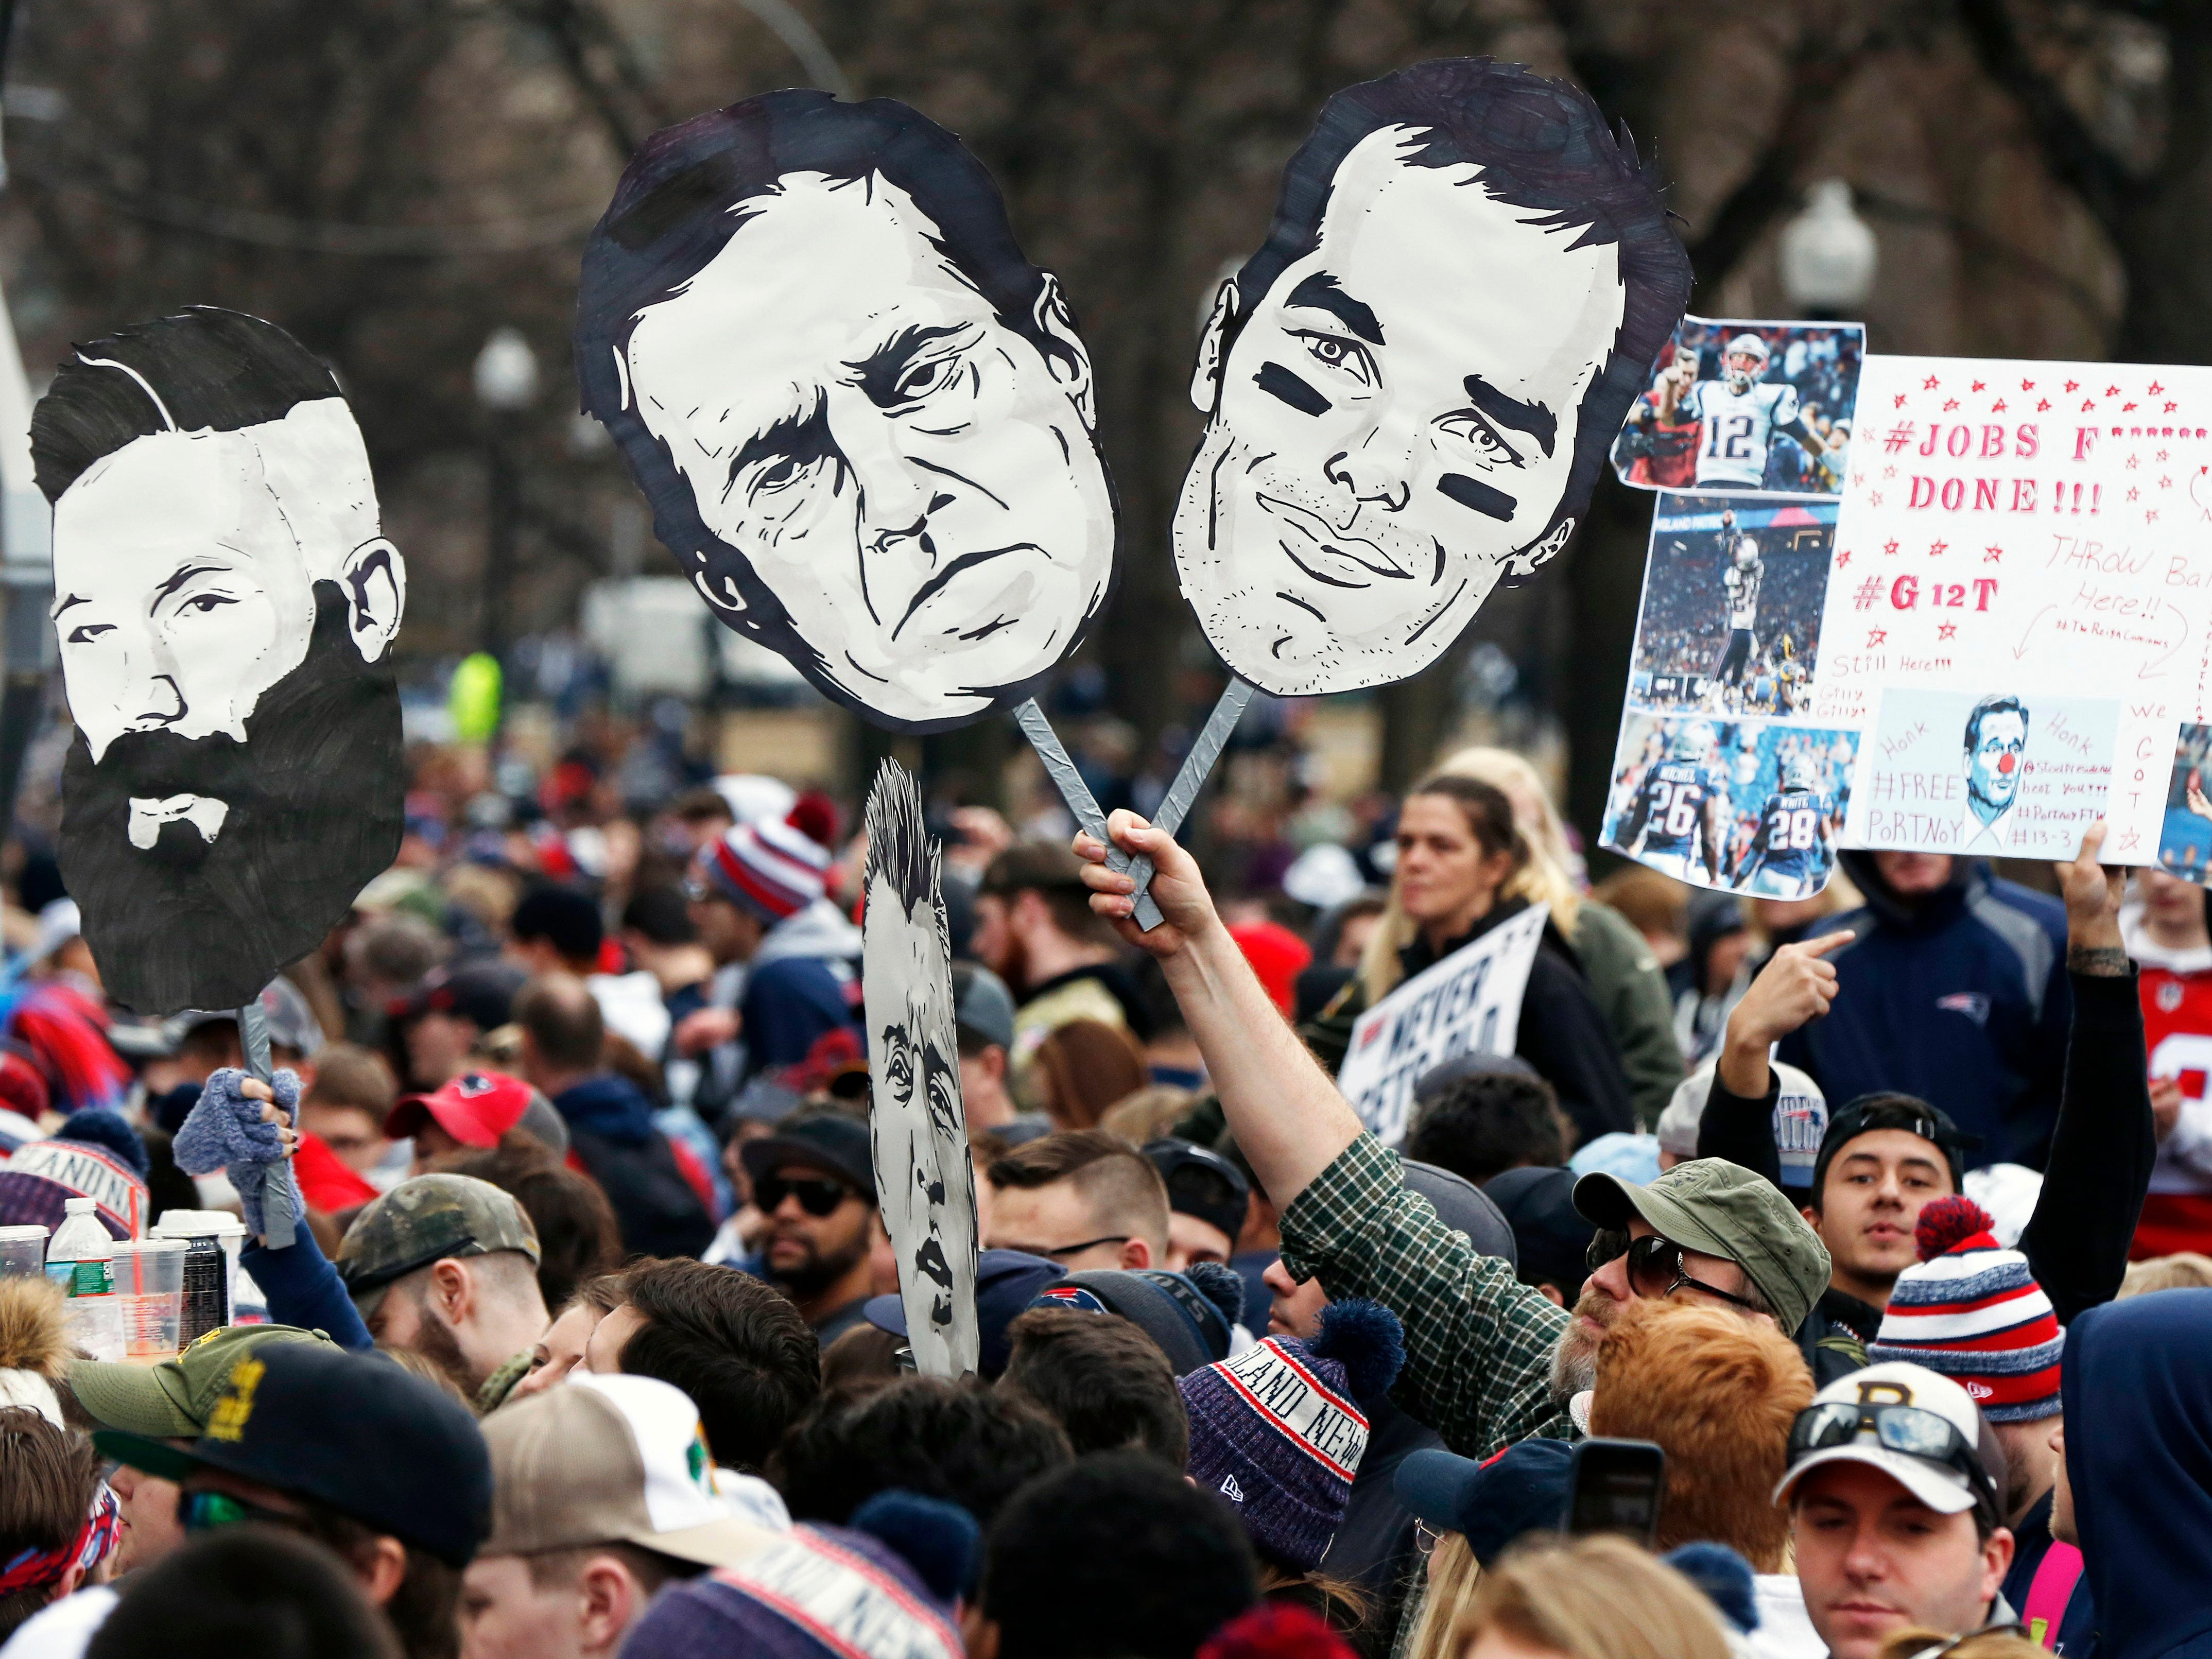 Fans gather to watch the New England Patriots parade to celebrate their win over the Los Angeles Rams in Sunday's NFL Super Bowl 53 football game in Atlanta. (AP Photo/Michael Dwyer)